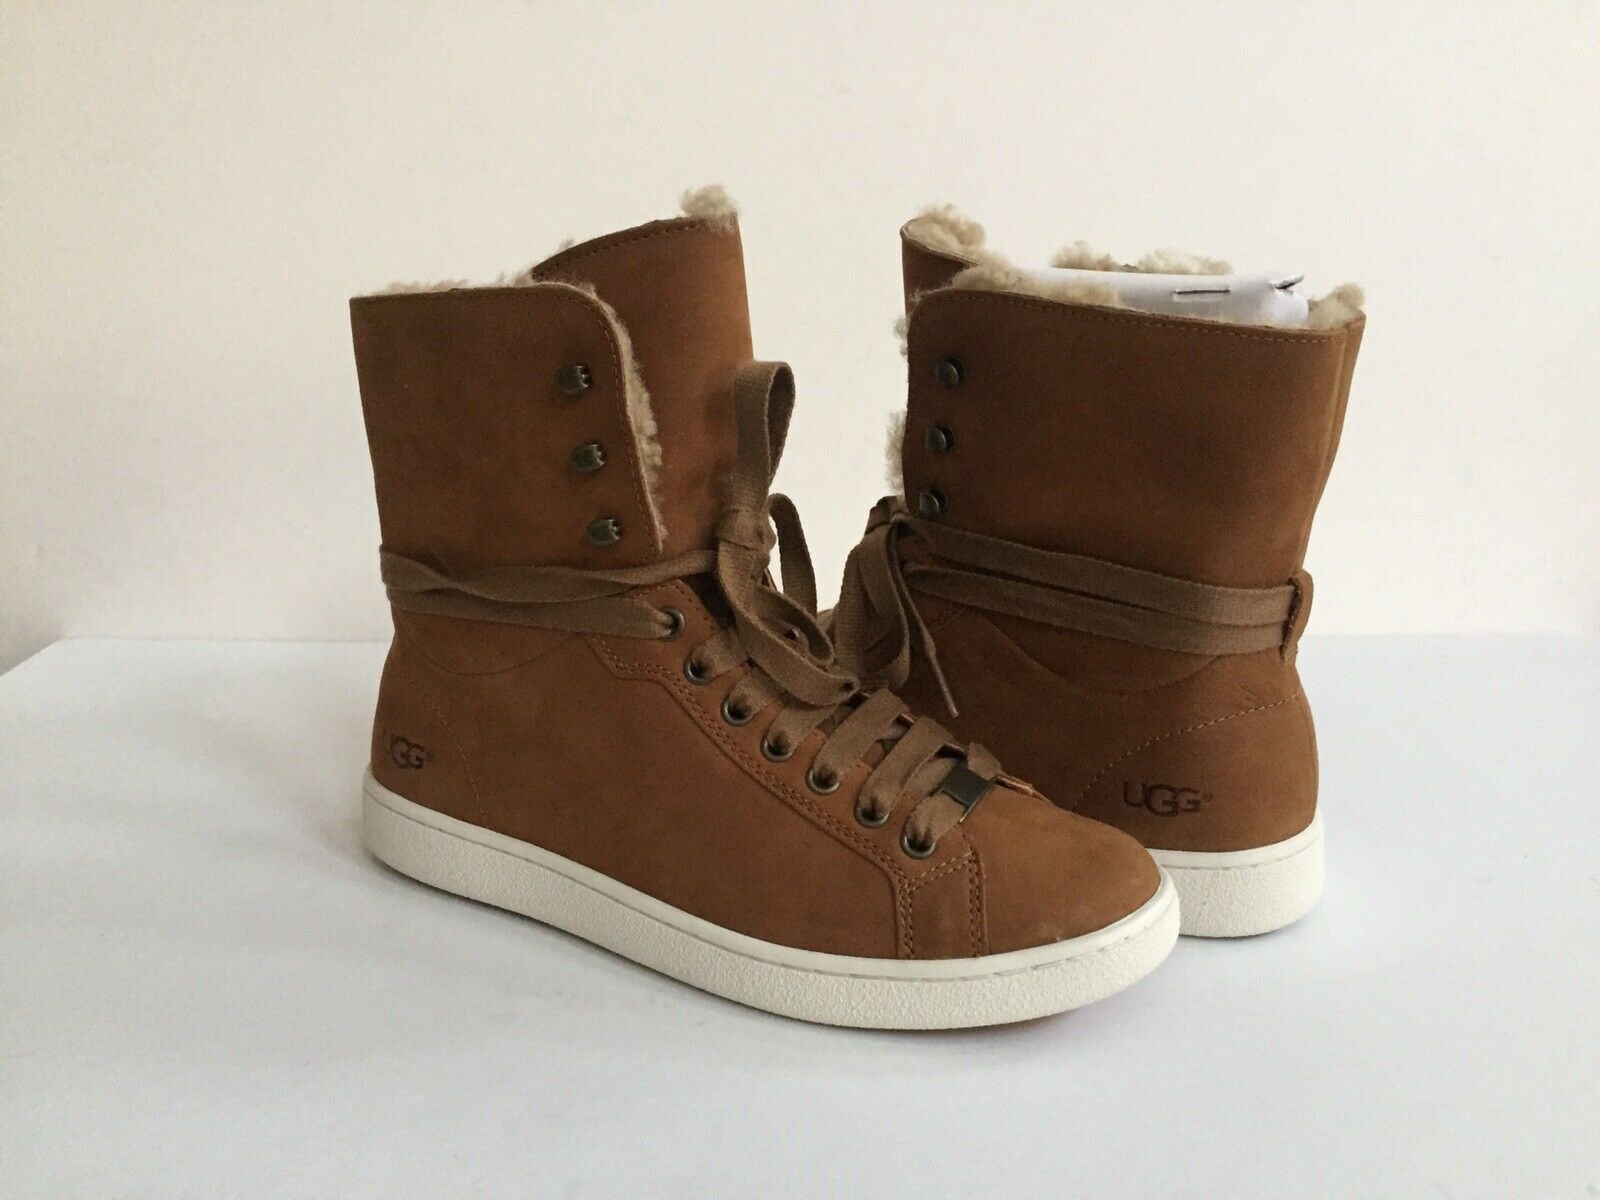 UGG STARLYN CHESTNUT ANKLE SNEAKERS LEATHER SHOE US 8 / EU 39 / UK 6 NIB